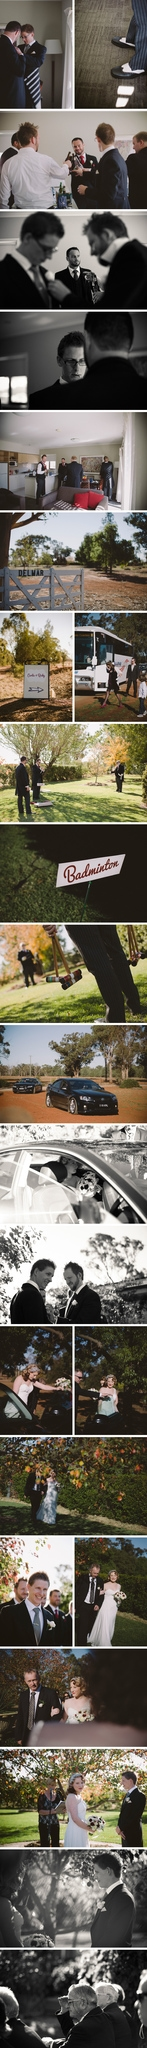 Wagga Wagga Wedding Photos